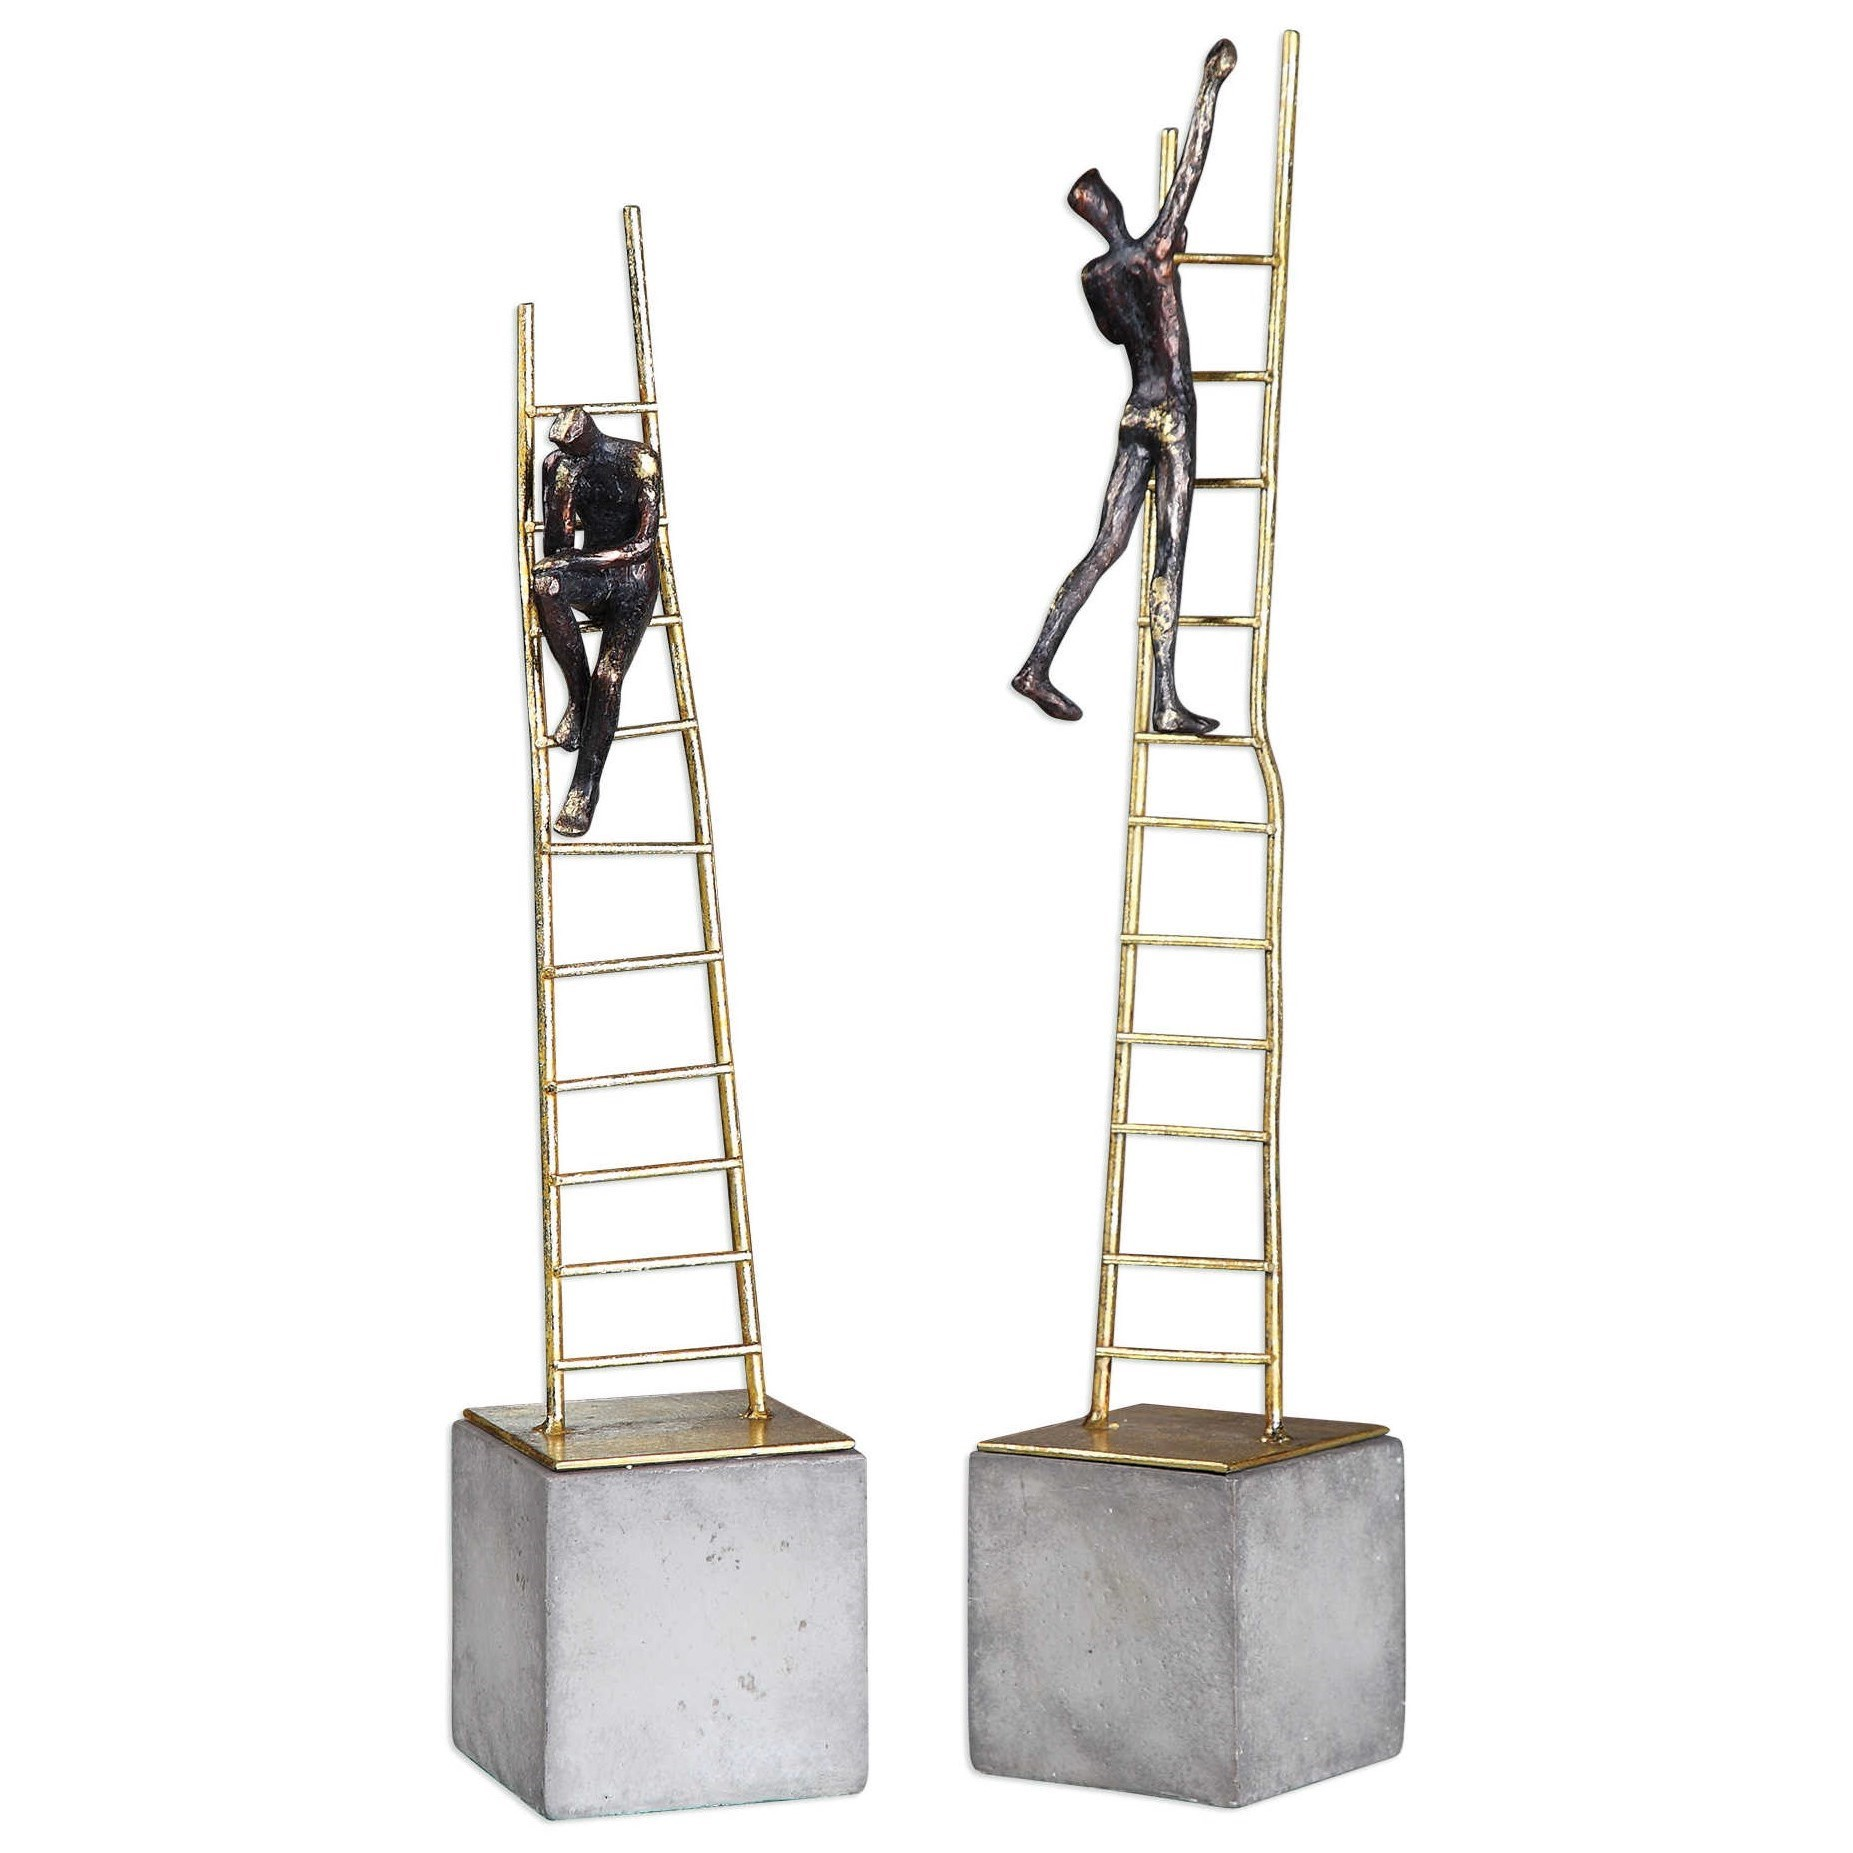 Ladder Climb Sculpture (Set of 2)